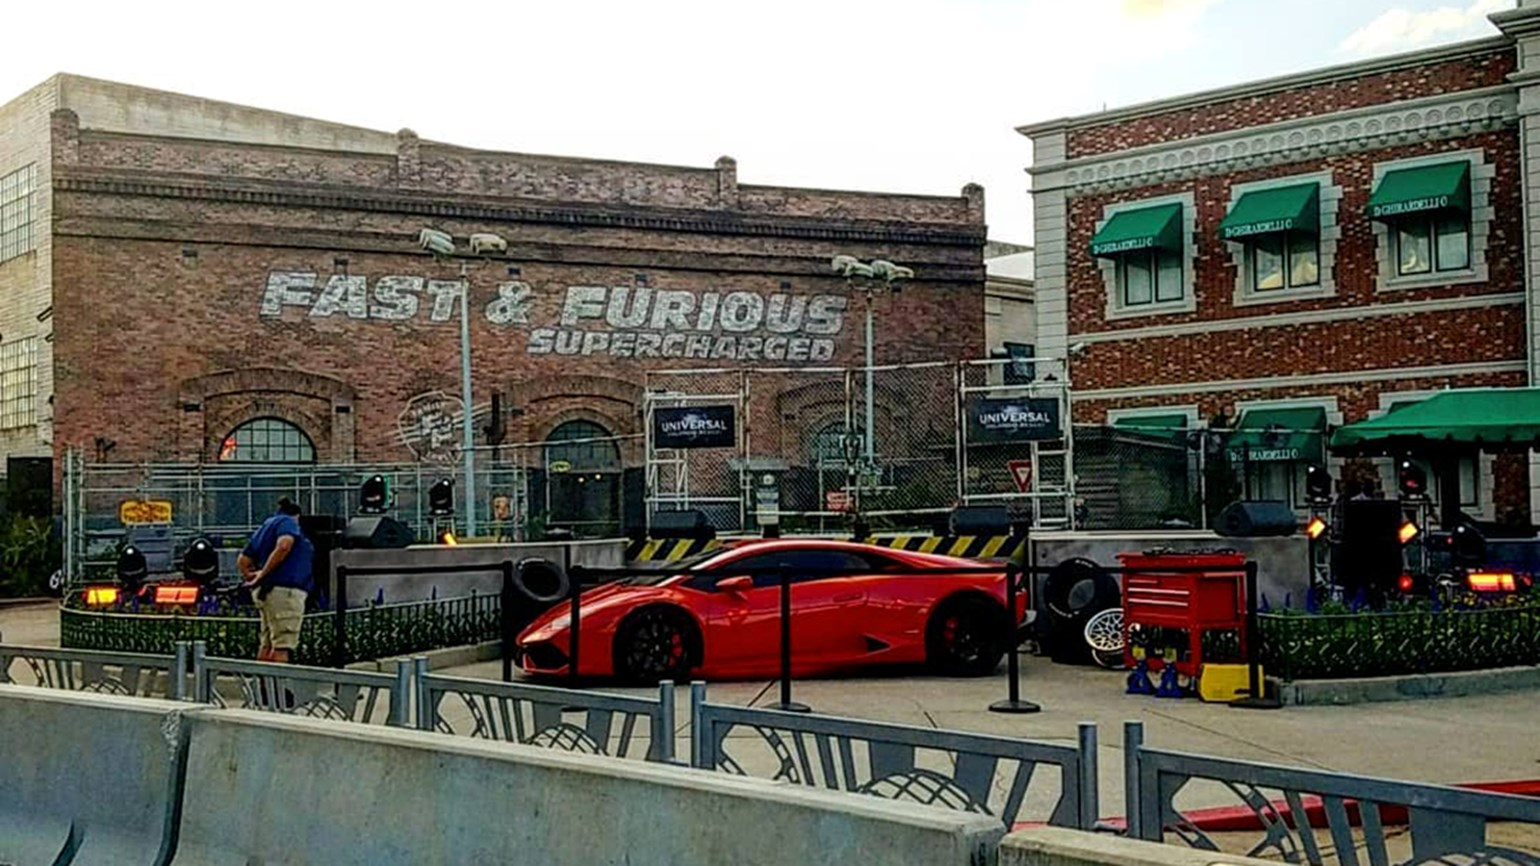 Universal's new Fast & Furious ride: Not just for motorheads